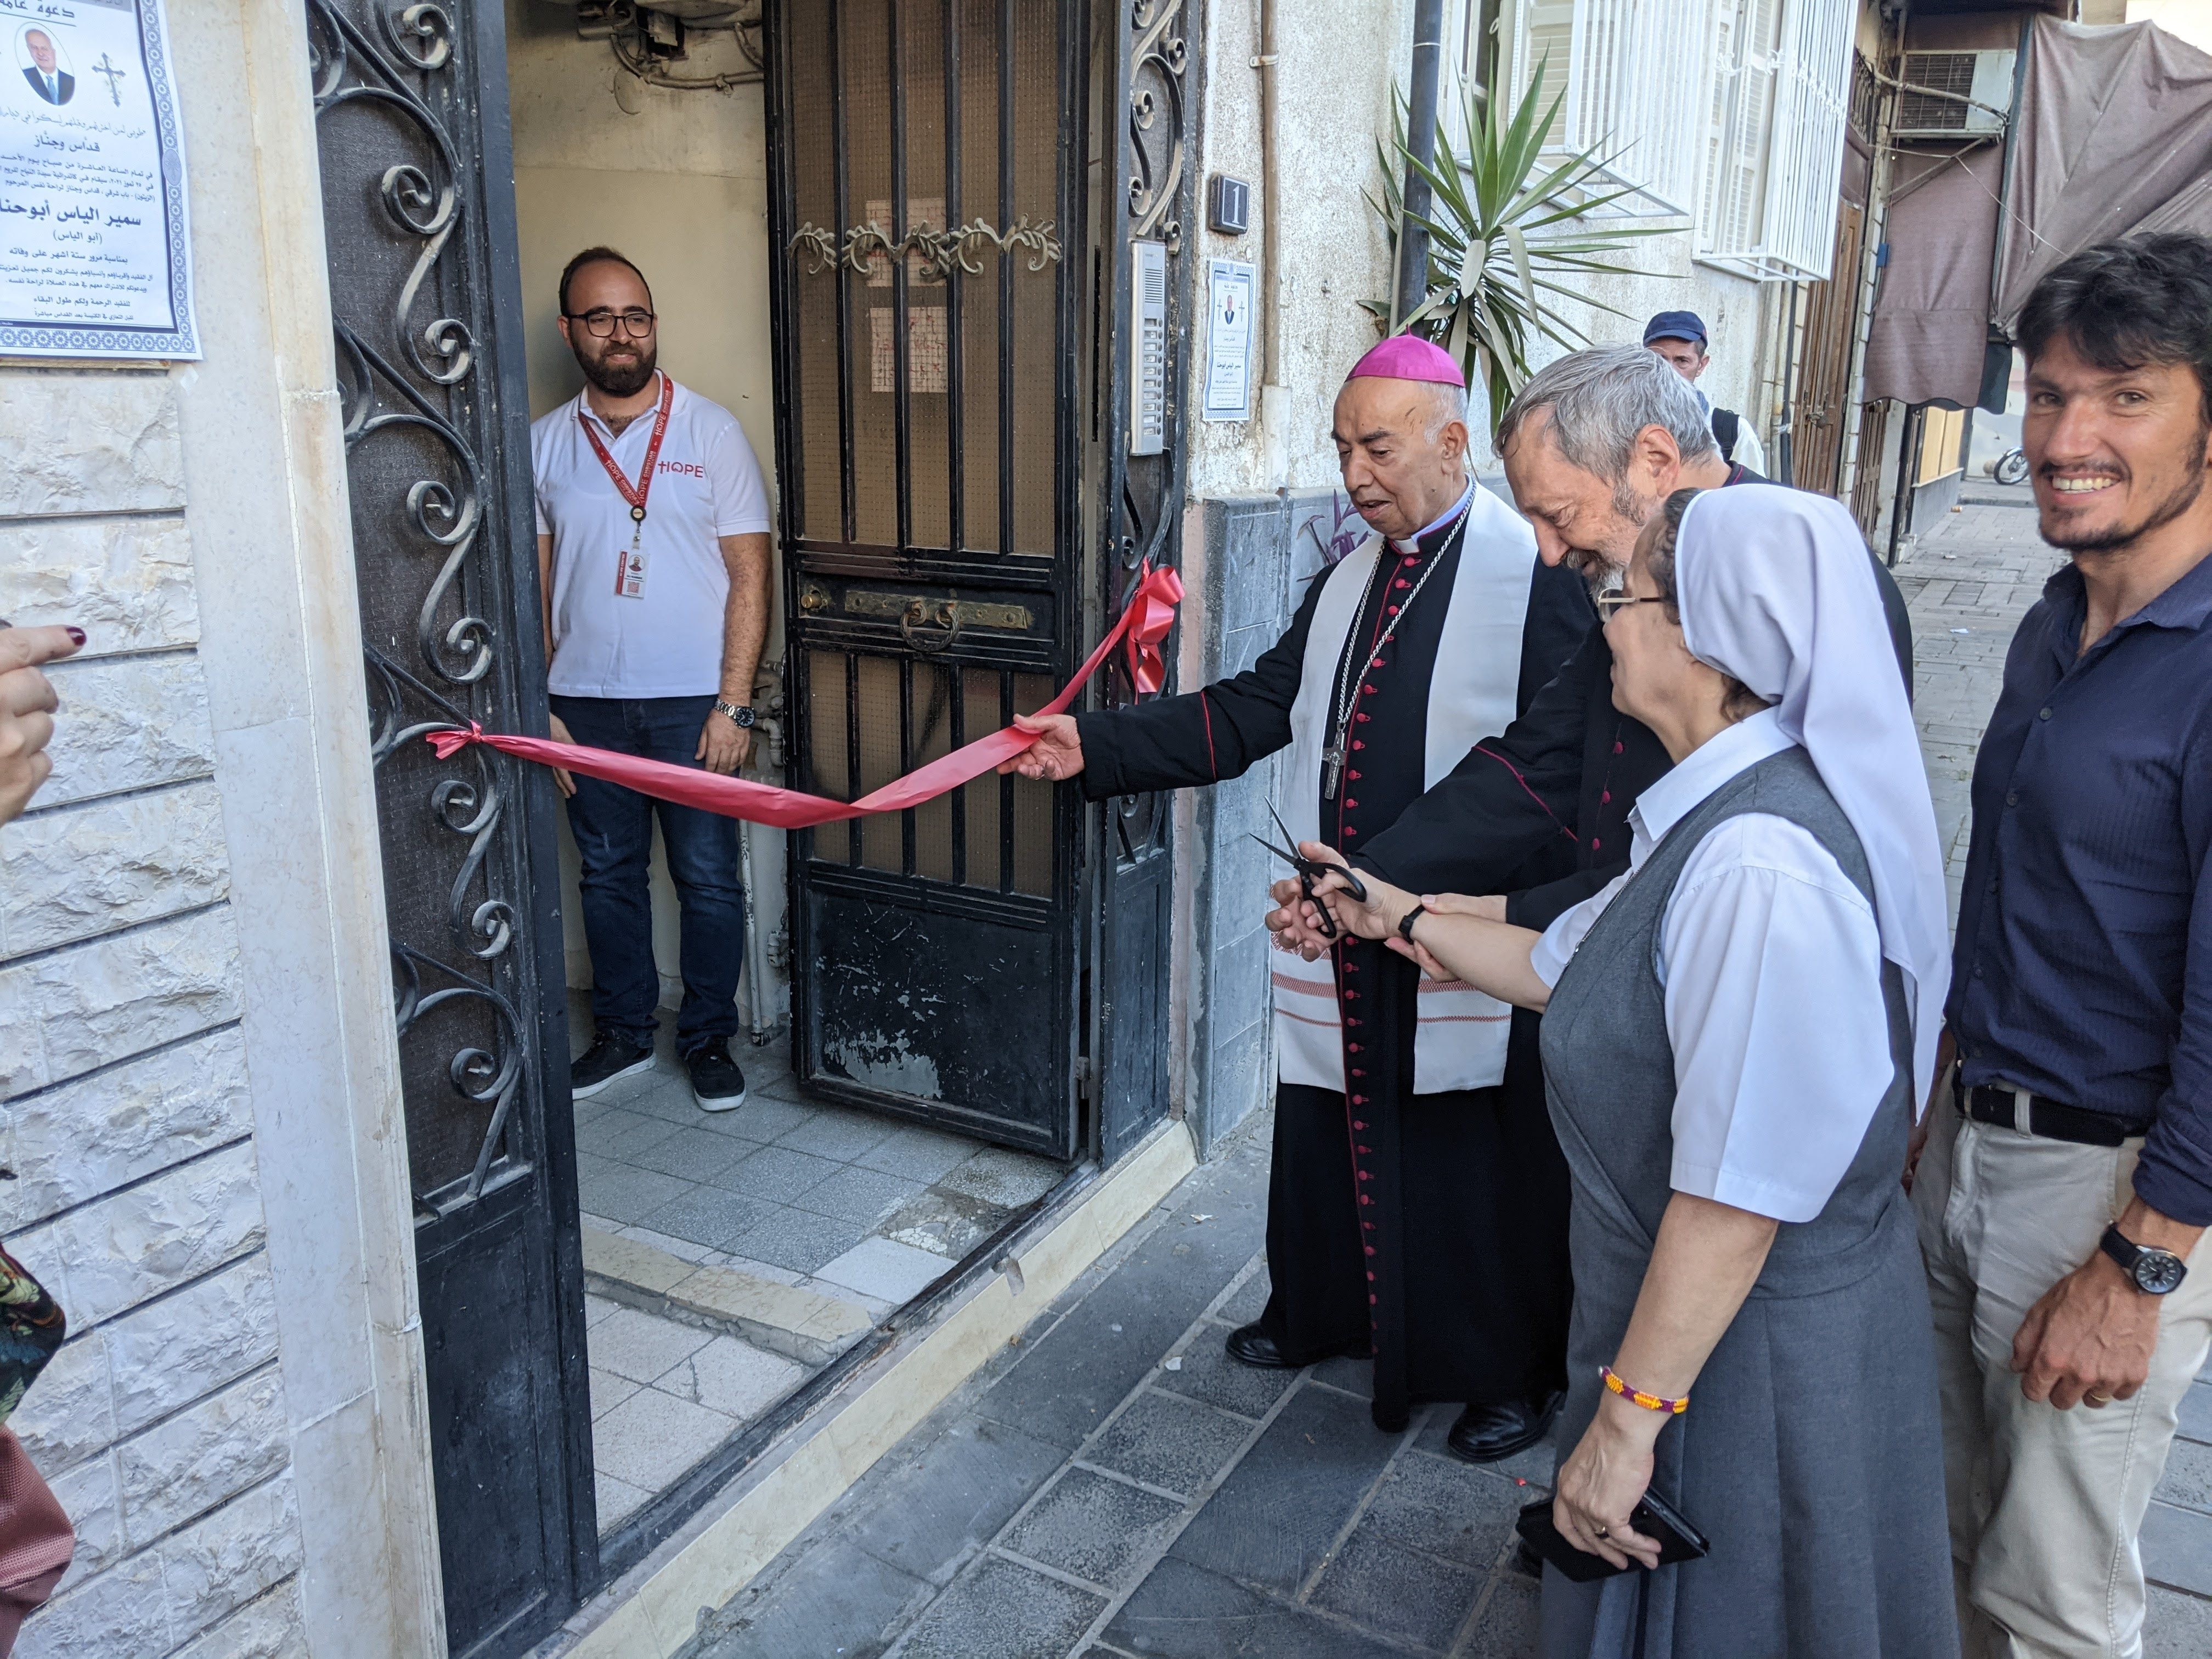 New microprojects centre in Damascus provides hope to Syria's embattled Christians